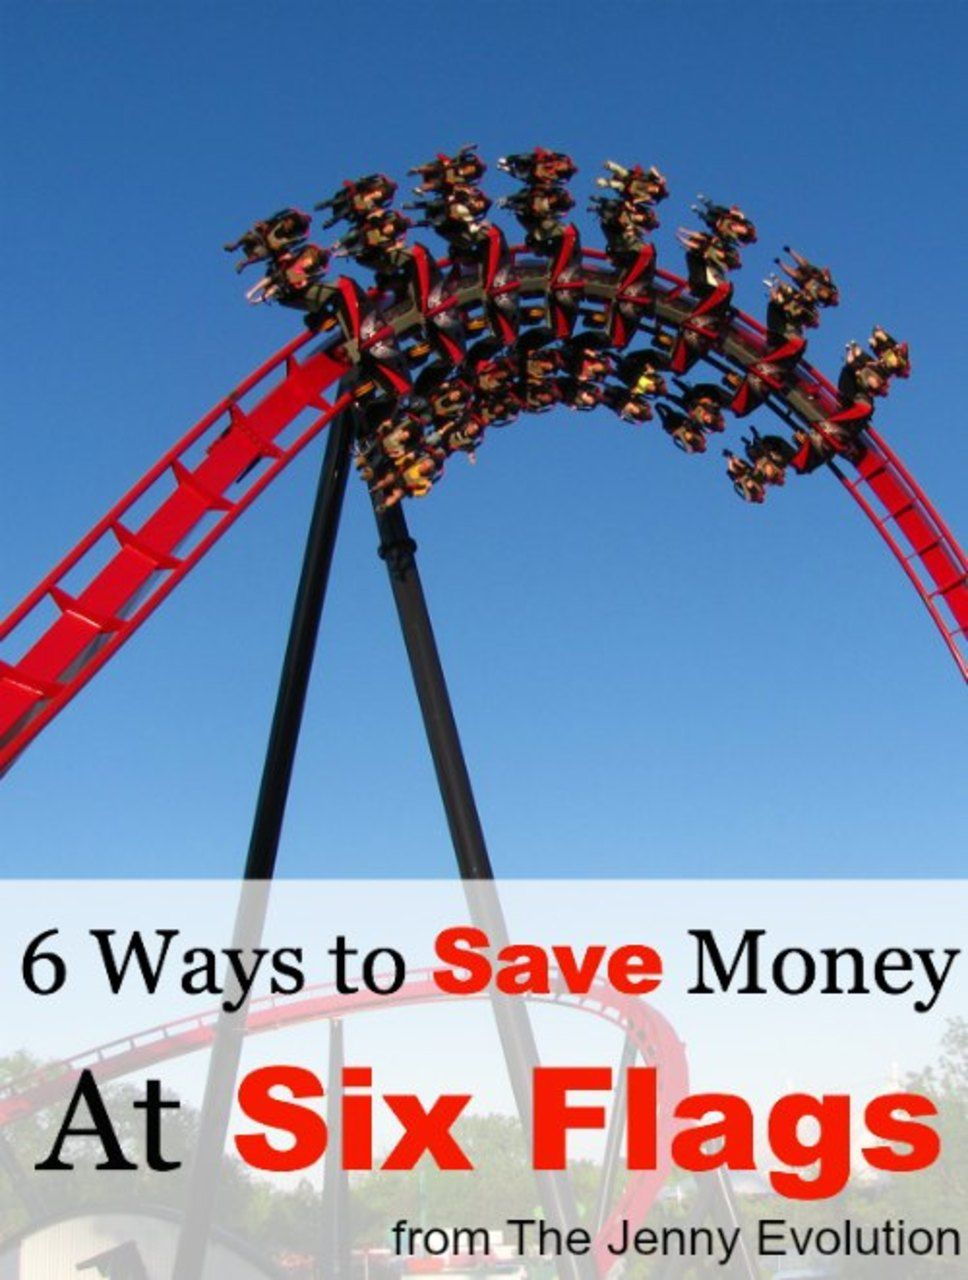 6 Ways To Save Money At Six Flags Six Flags Ways To Save Ways To Save Money